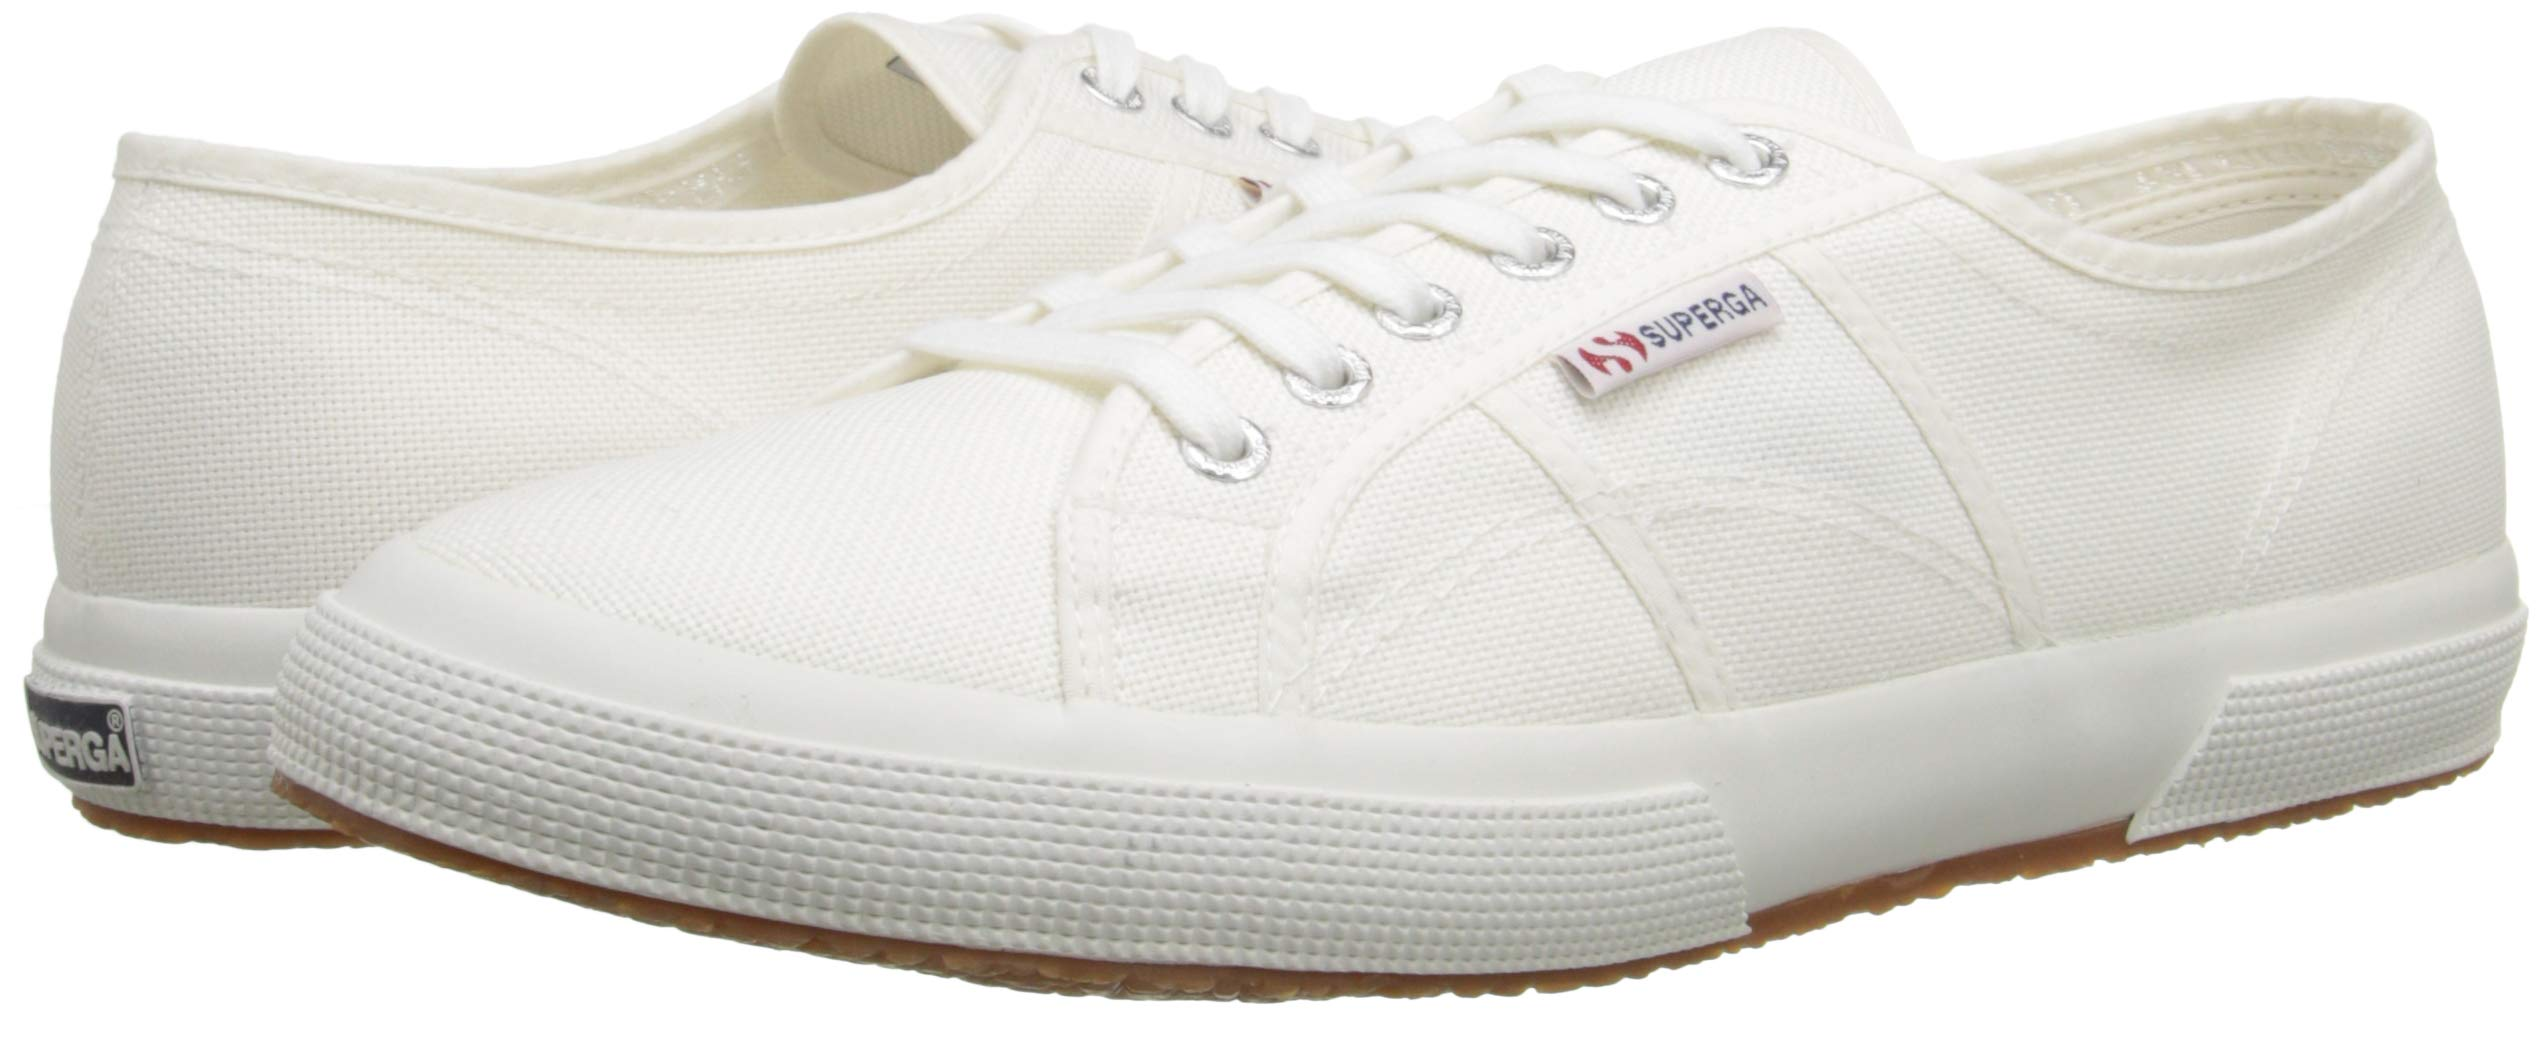 Superga 2750 Cotu Classic, Unisex Adults' Low-Top Sneakers, White, 7.5 UK (41.5 EU) by Superga (Image #6)